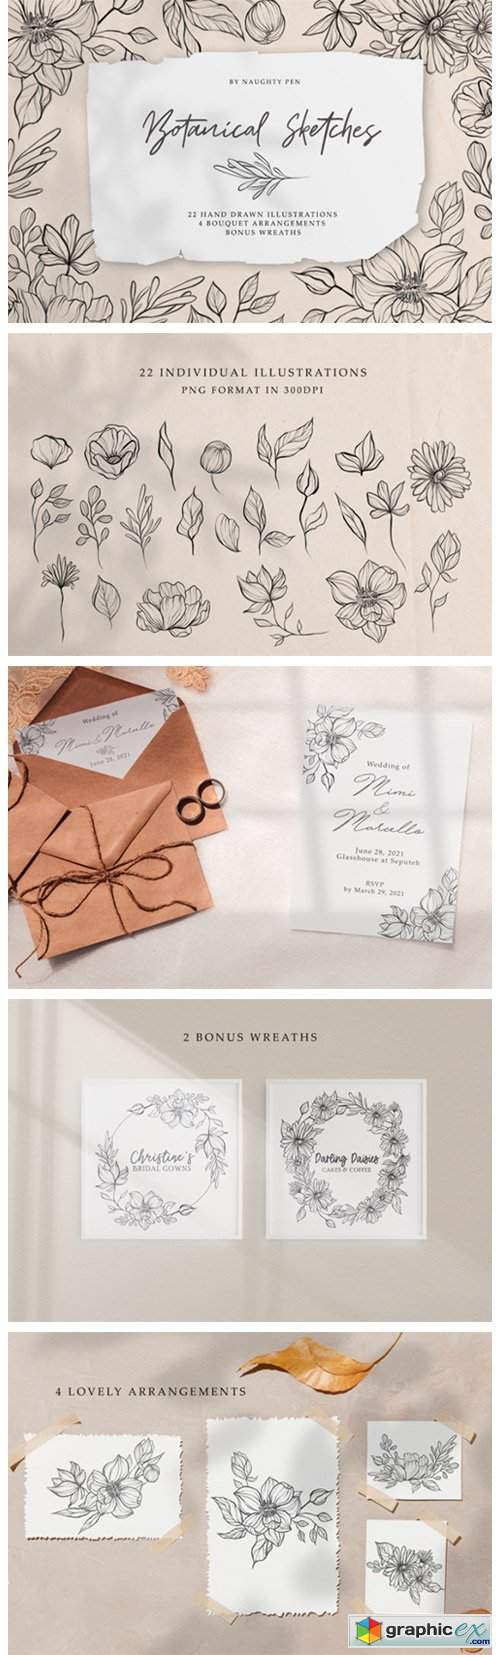 Botanical Sketches Floral Line Art